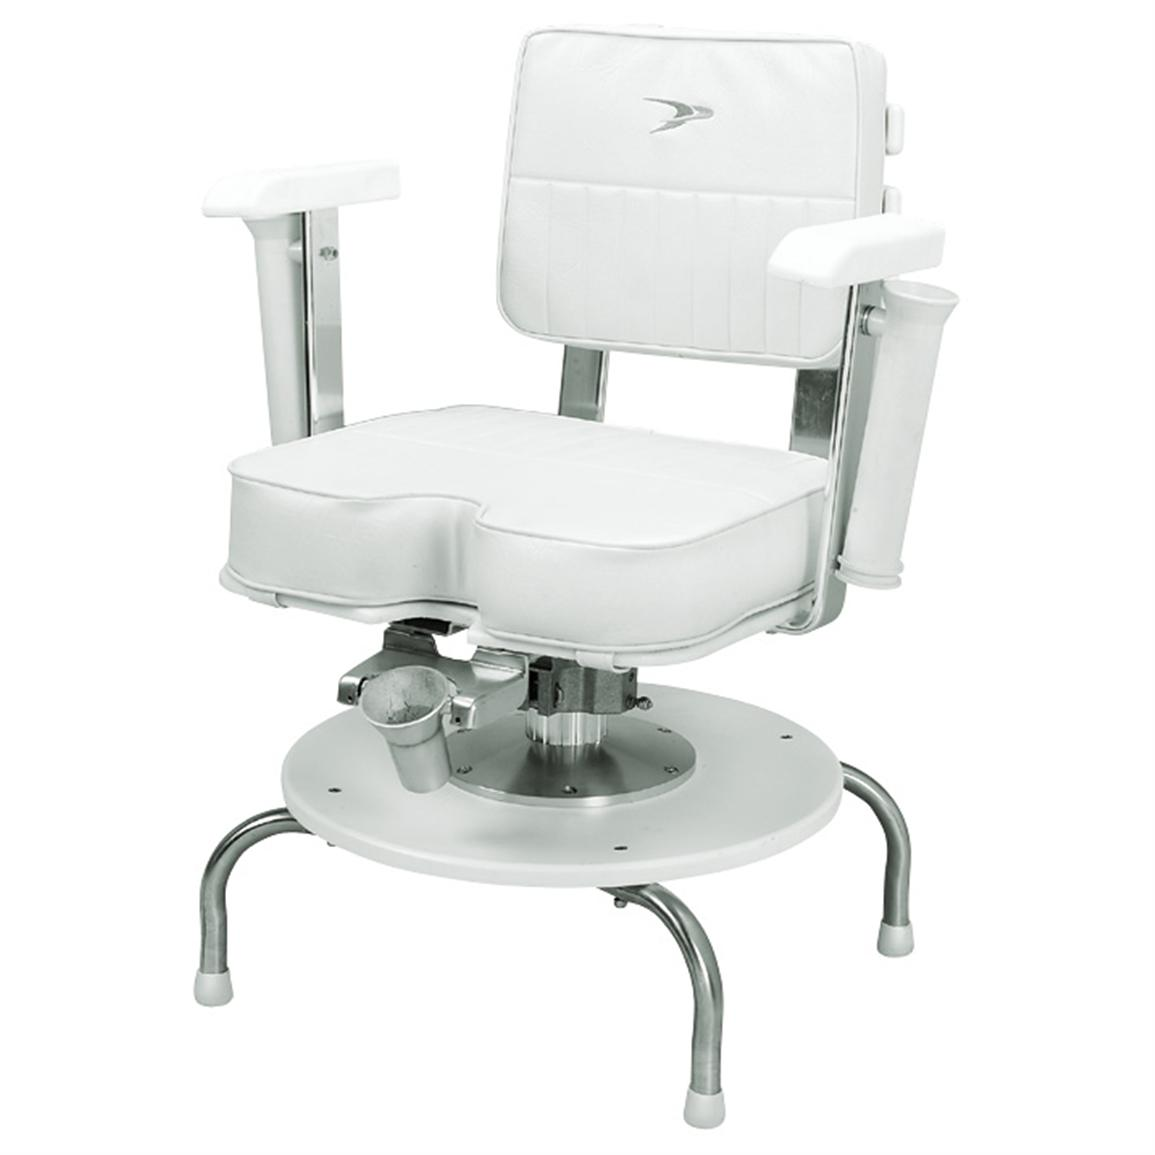 Helm Chairs Wise Offshore Ladderback Helm Chair With Quad Base